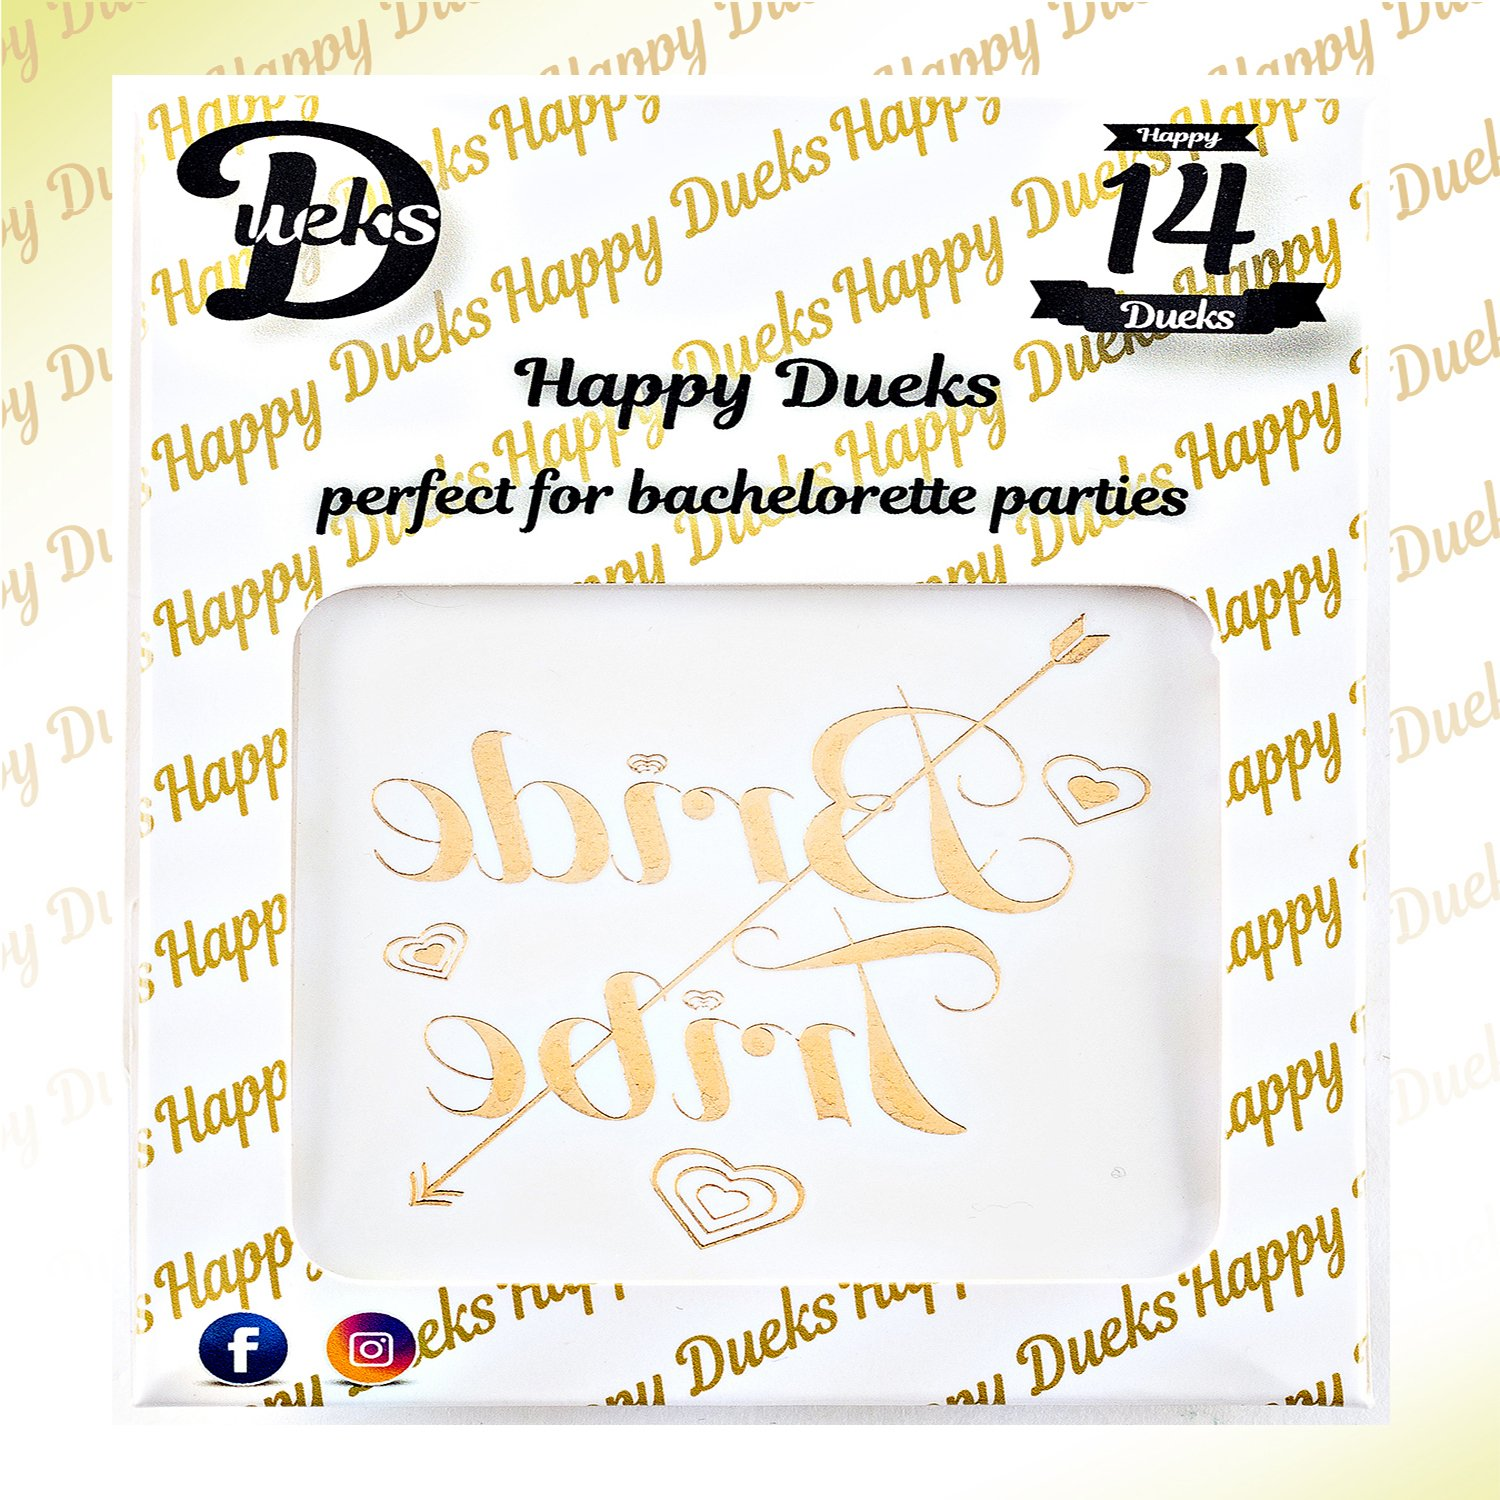 Happy Dueks Bachelorette Party Bride and Bride Tribe Cups,16-Oz Plastic Printed Cocktail Glasses /& 5 Bonus Tattoos-Fun Supply Kit for Hen Party//Bridal Shower//Girls Night,Cold Drinks//Beverages